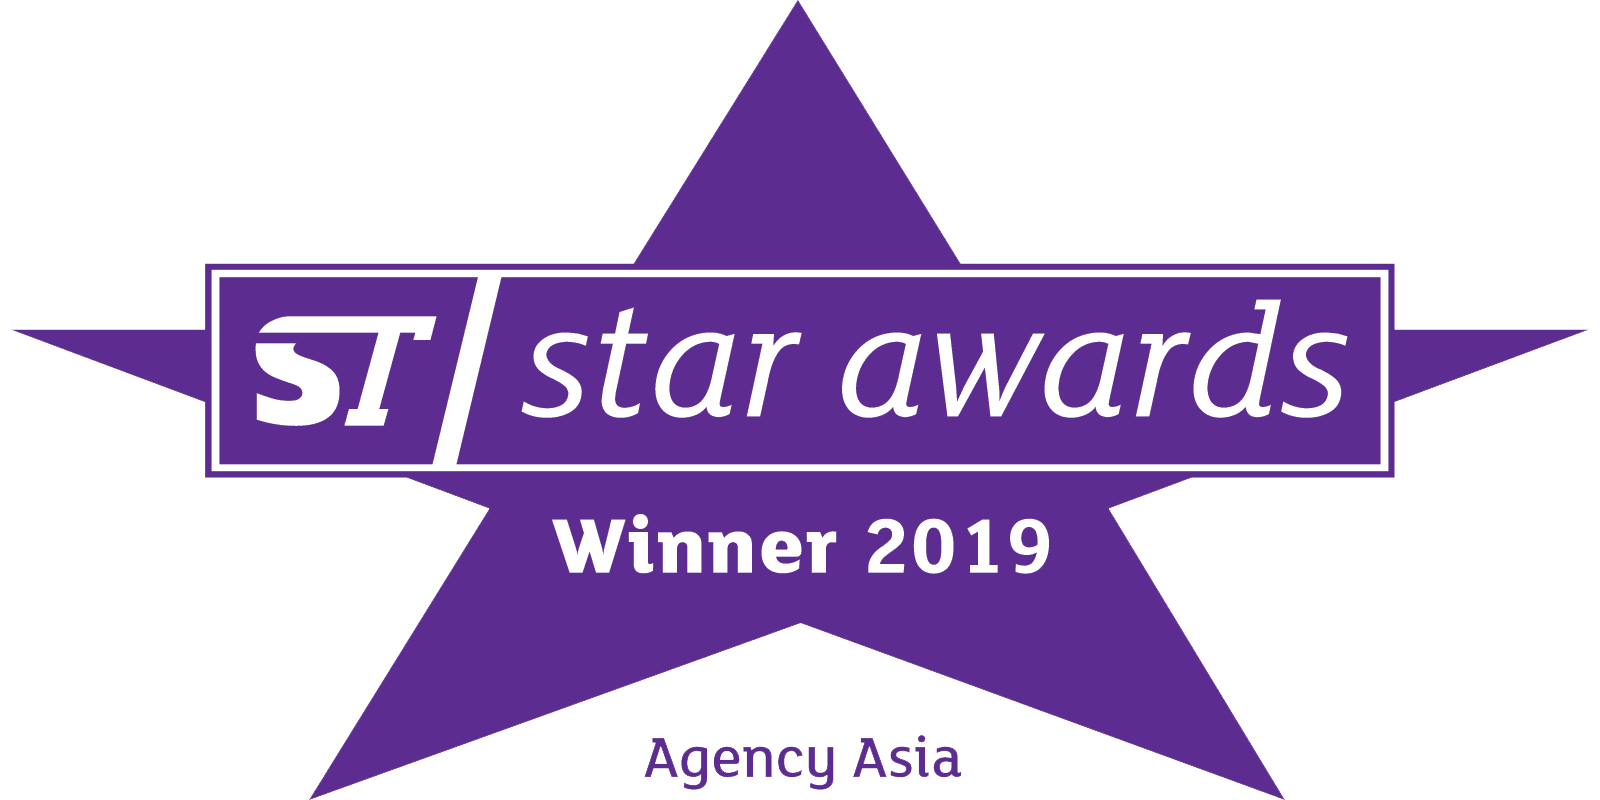 Star Awards Winner 2019